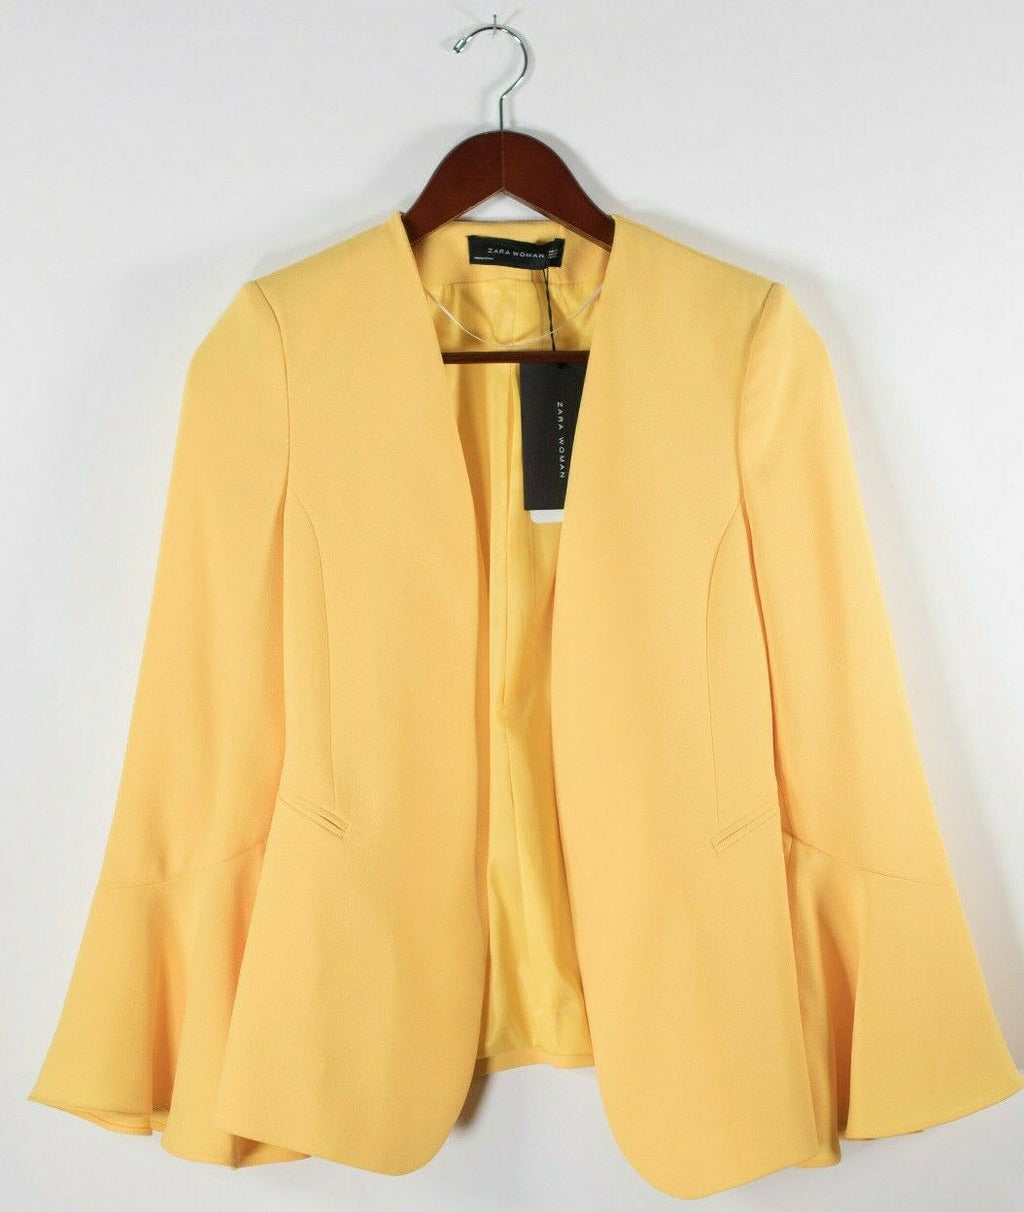 Zara Womens XS Yellow Jacket Flutter Bell Sleeve Blazer Crepe Open Jacket $145